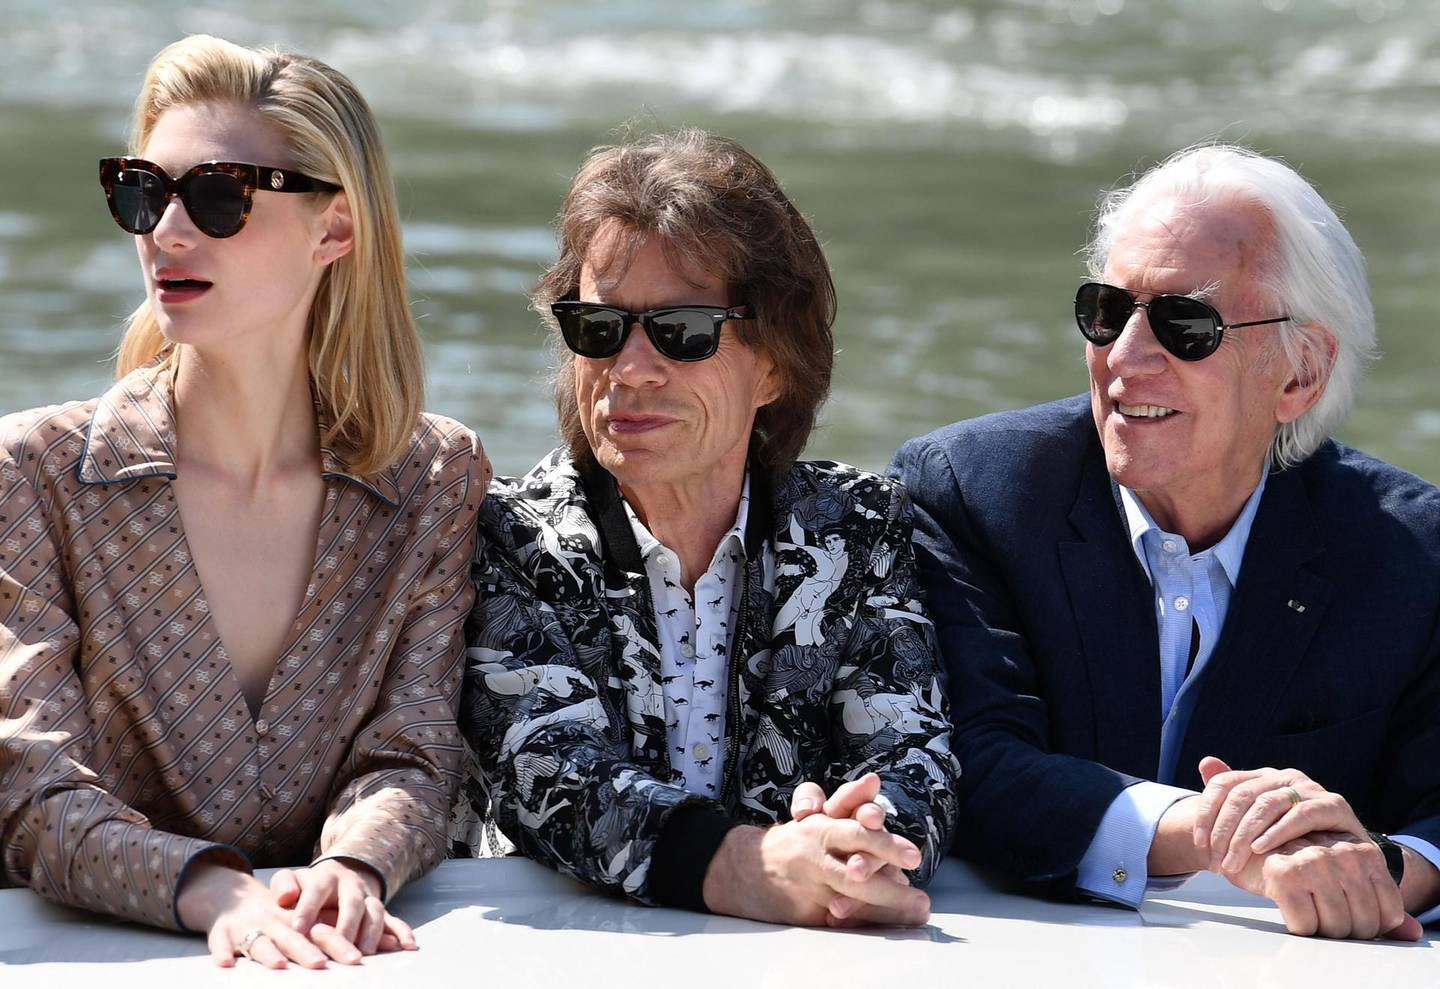 """(FromL) Australian actress Elizabeth Debicki, British musician, singer and actor Mick Jagger and Canadian actor Donald Sutherland arrive by taxi boat at the pier of the Palazzo del Casino to attend a photocall for the film """"The Burnt Orange Heresy"""" presented out of competition on September 7, 2019 during the 76th Venice Film Festival at Venice Lido.  / AFP / Alberto PIZZOLI"""